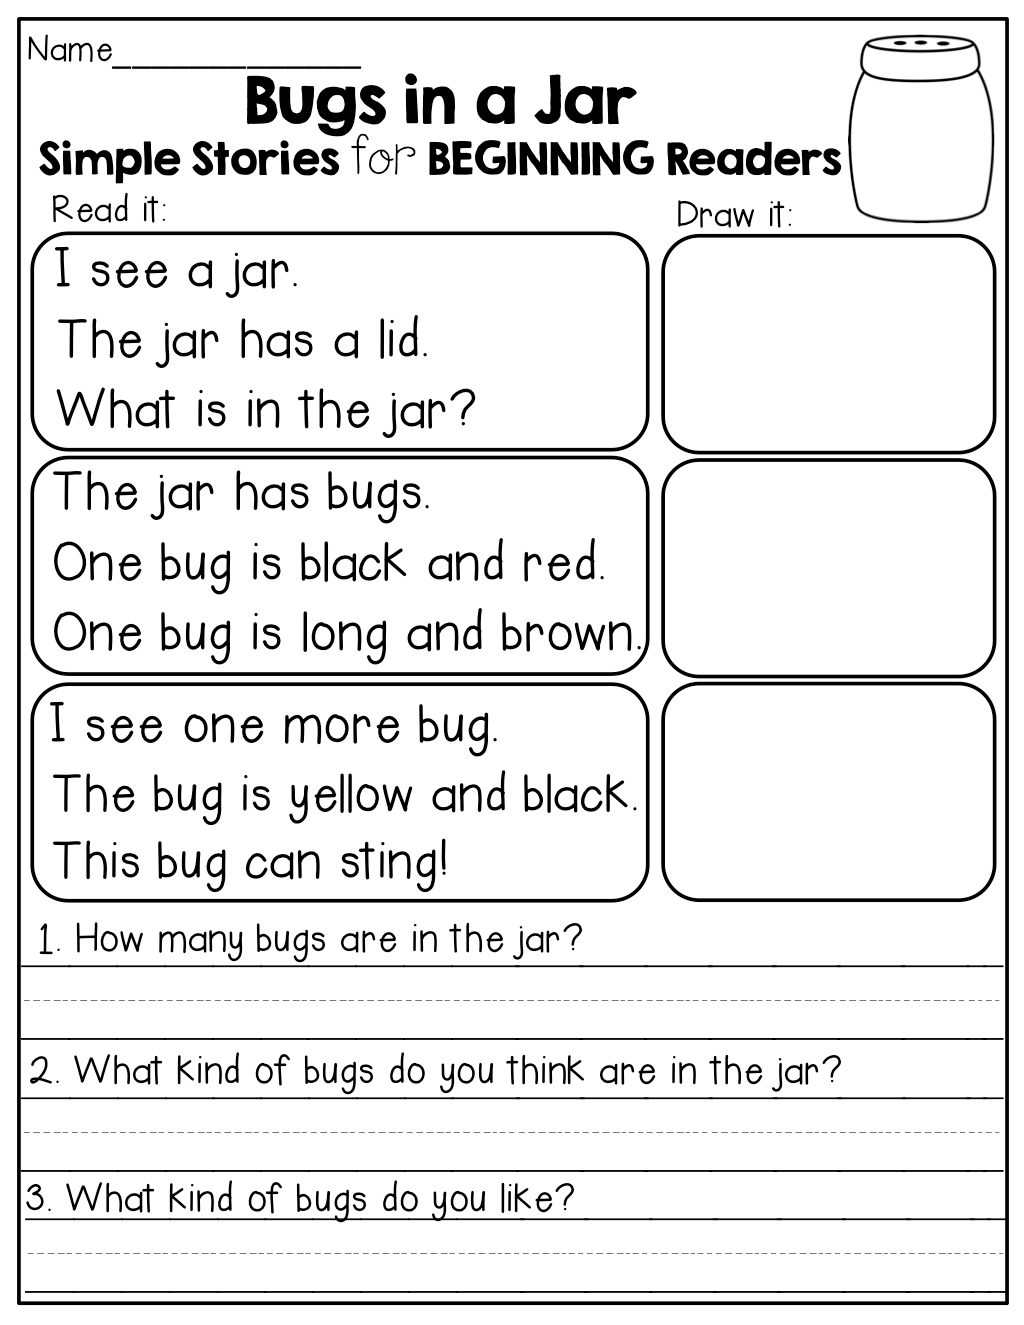 Simple Stories For Beginning Readers Read It Draw It And Answer Comprehension Questions